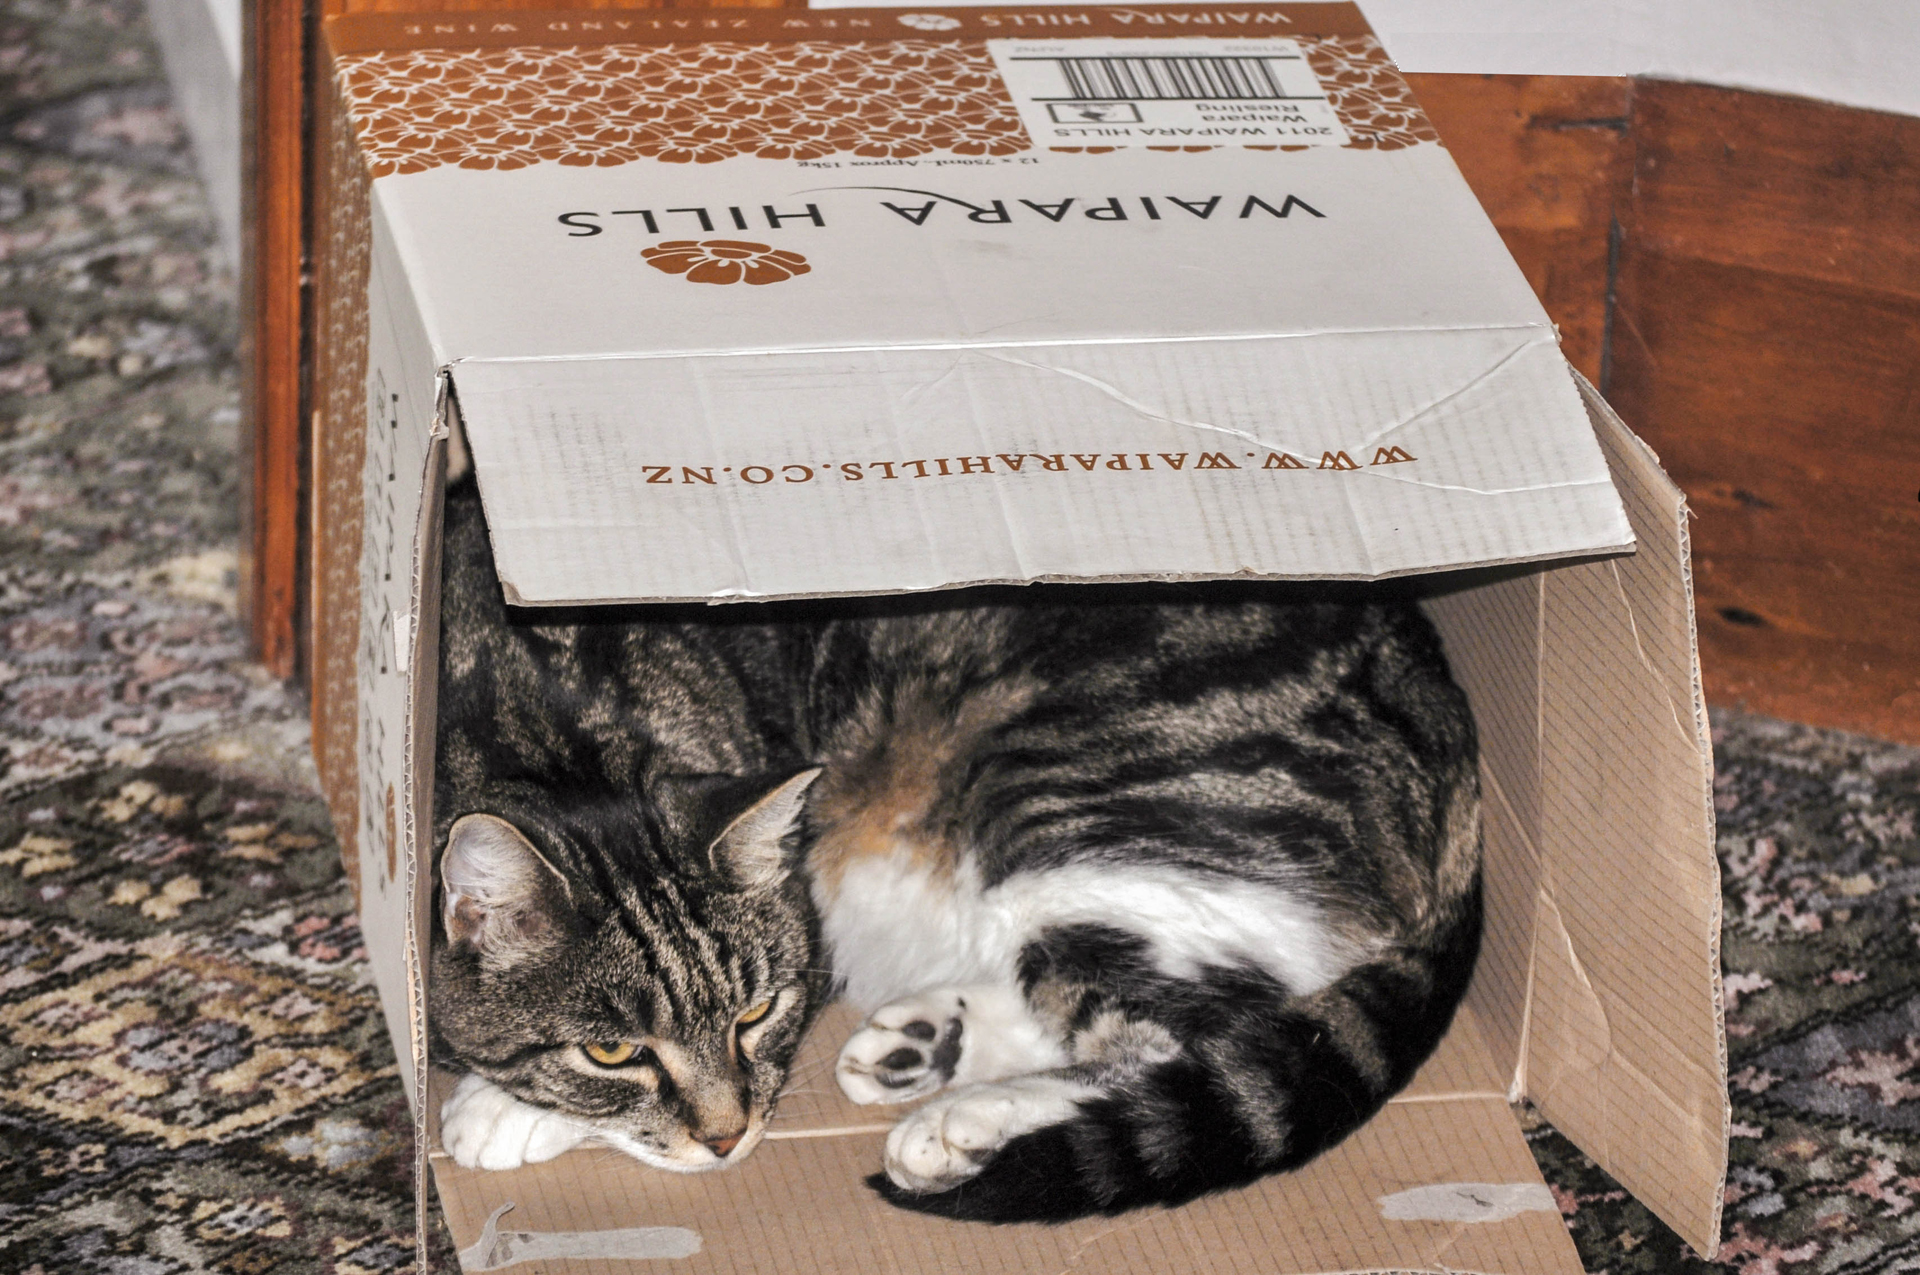 Joe our 18 yer old cat who likes to live in boxes